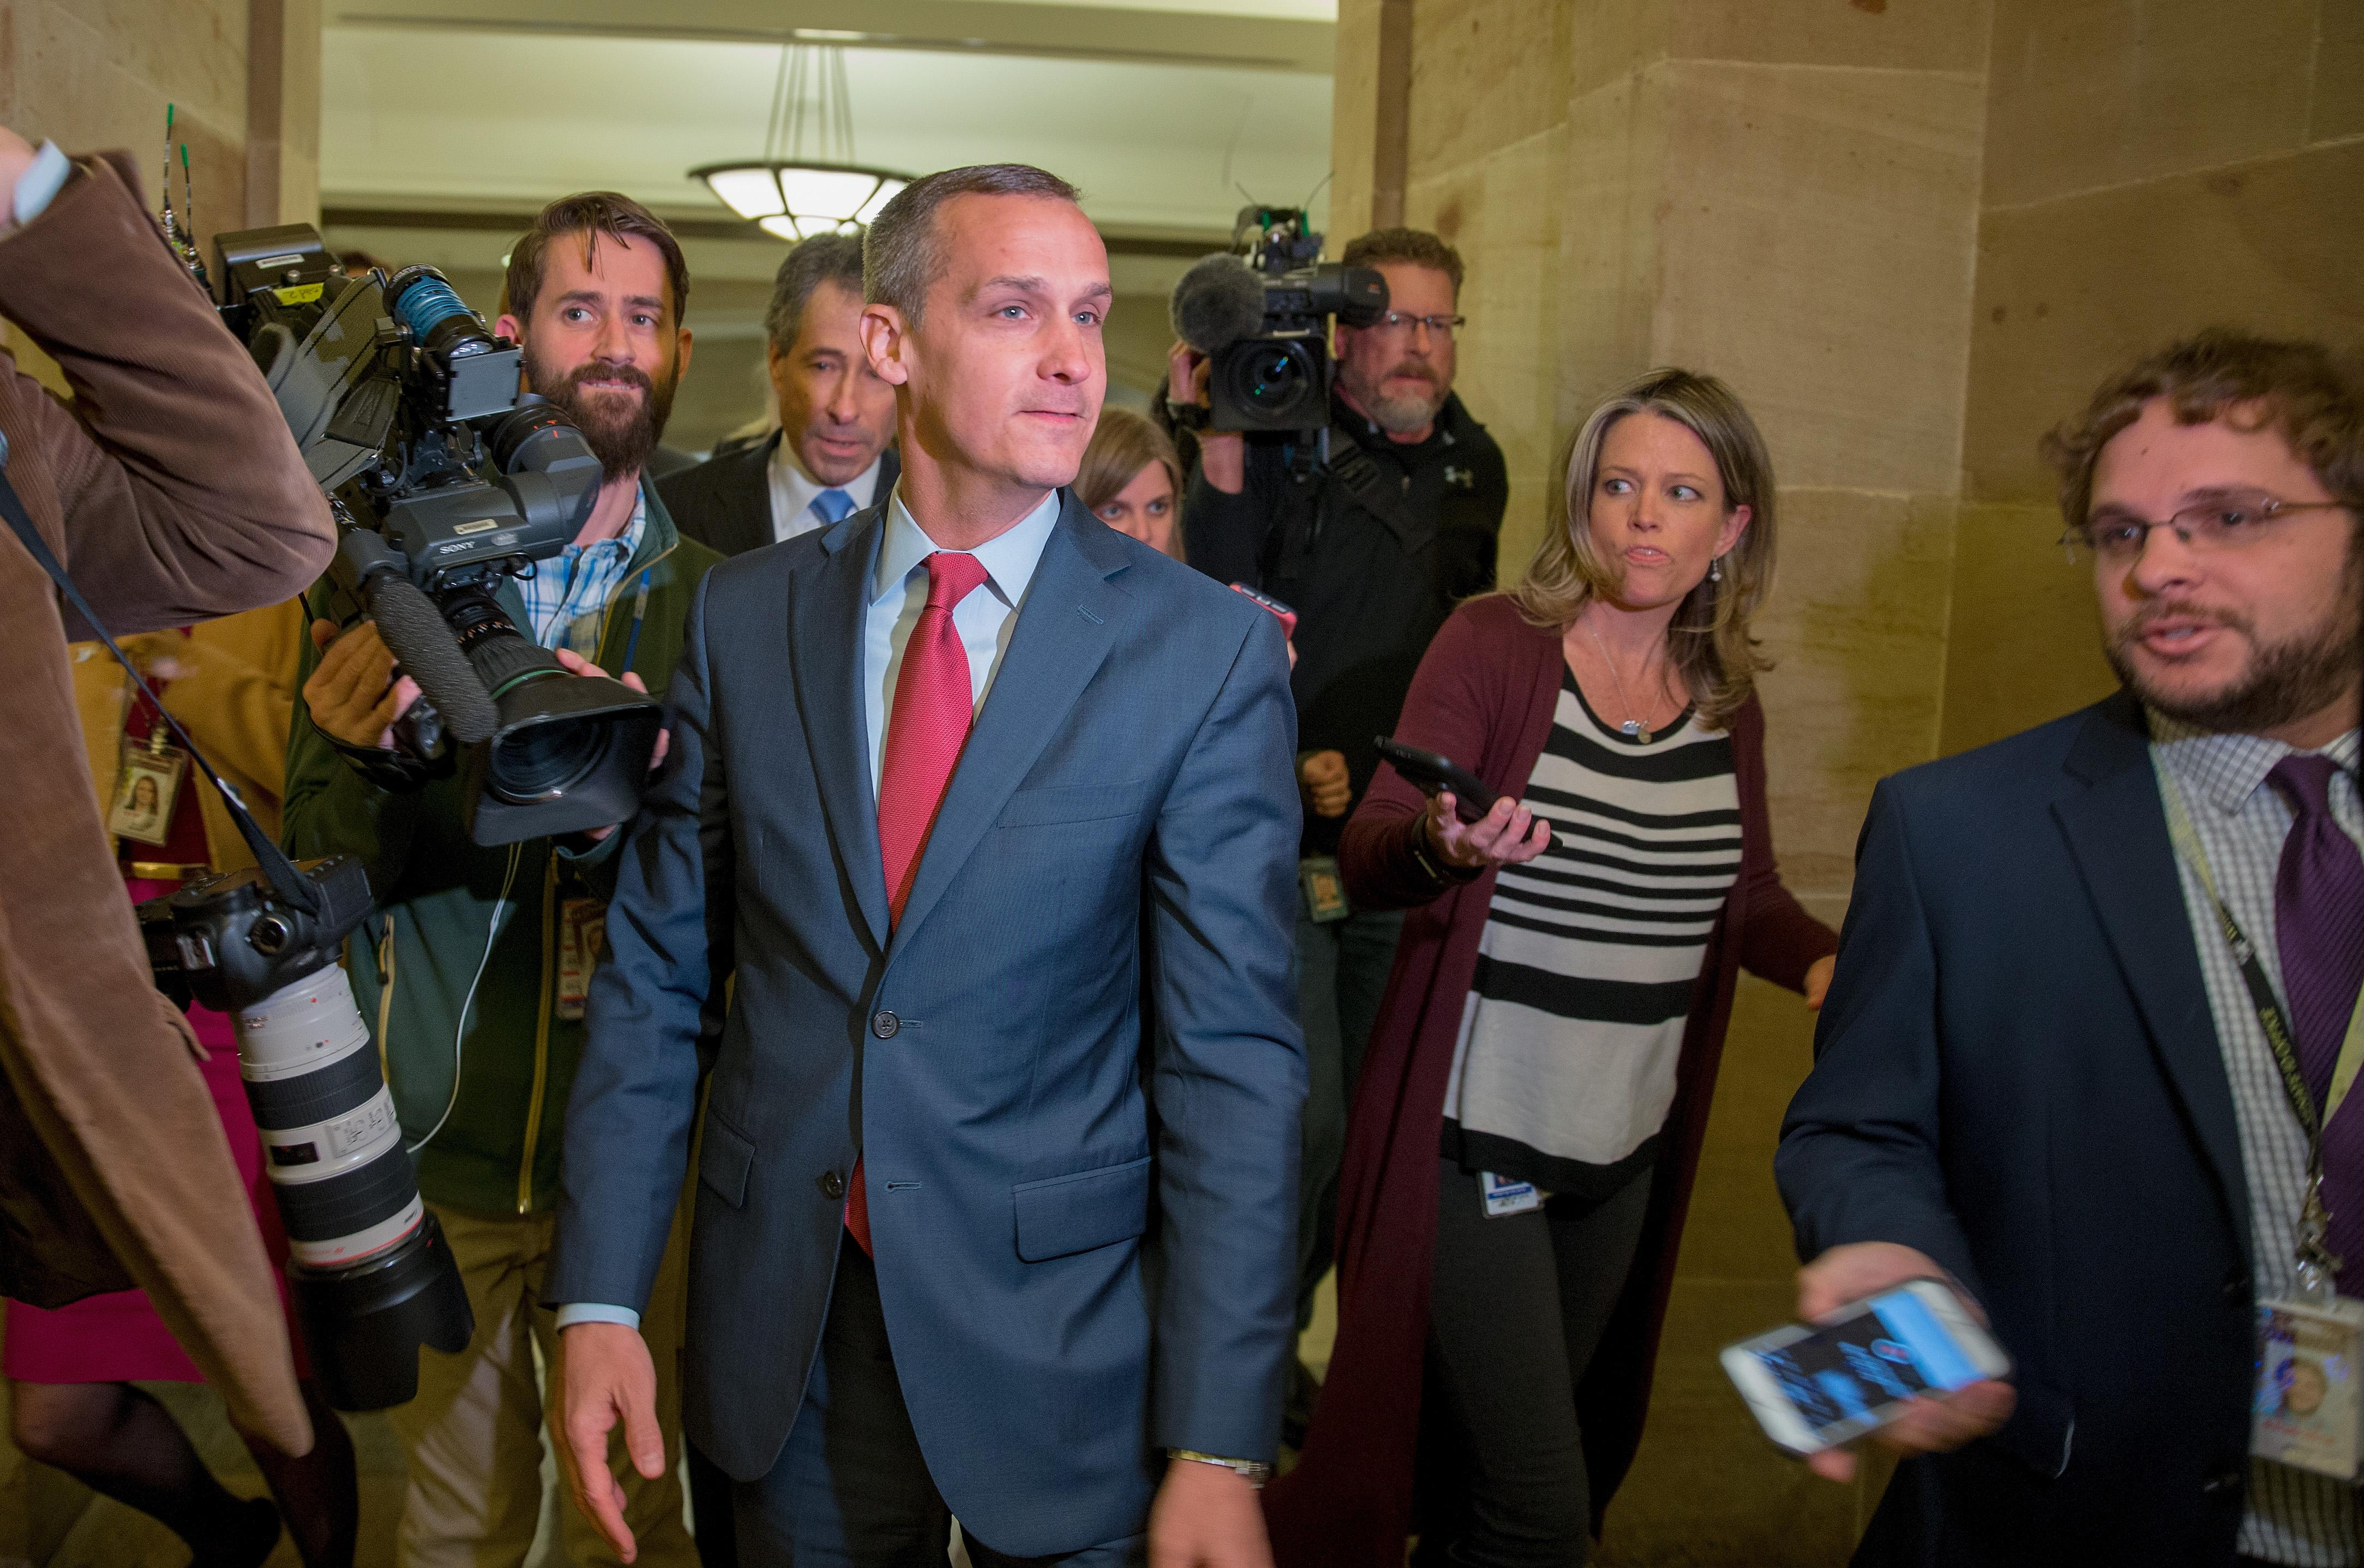 Corey Lewandowski Mocks Story of Girl with Down Syndrome Separated from Mother